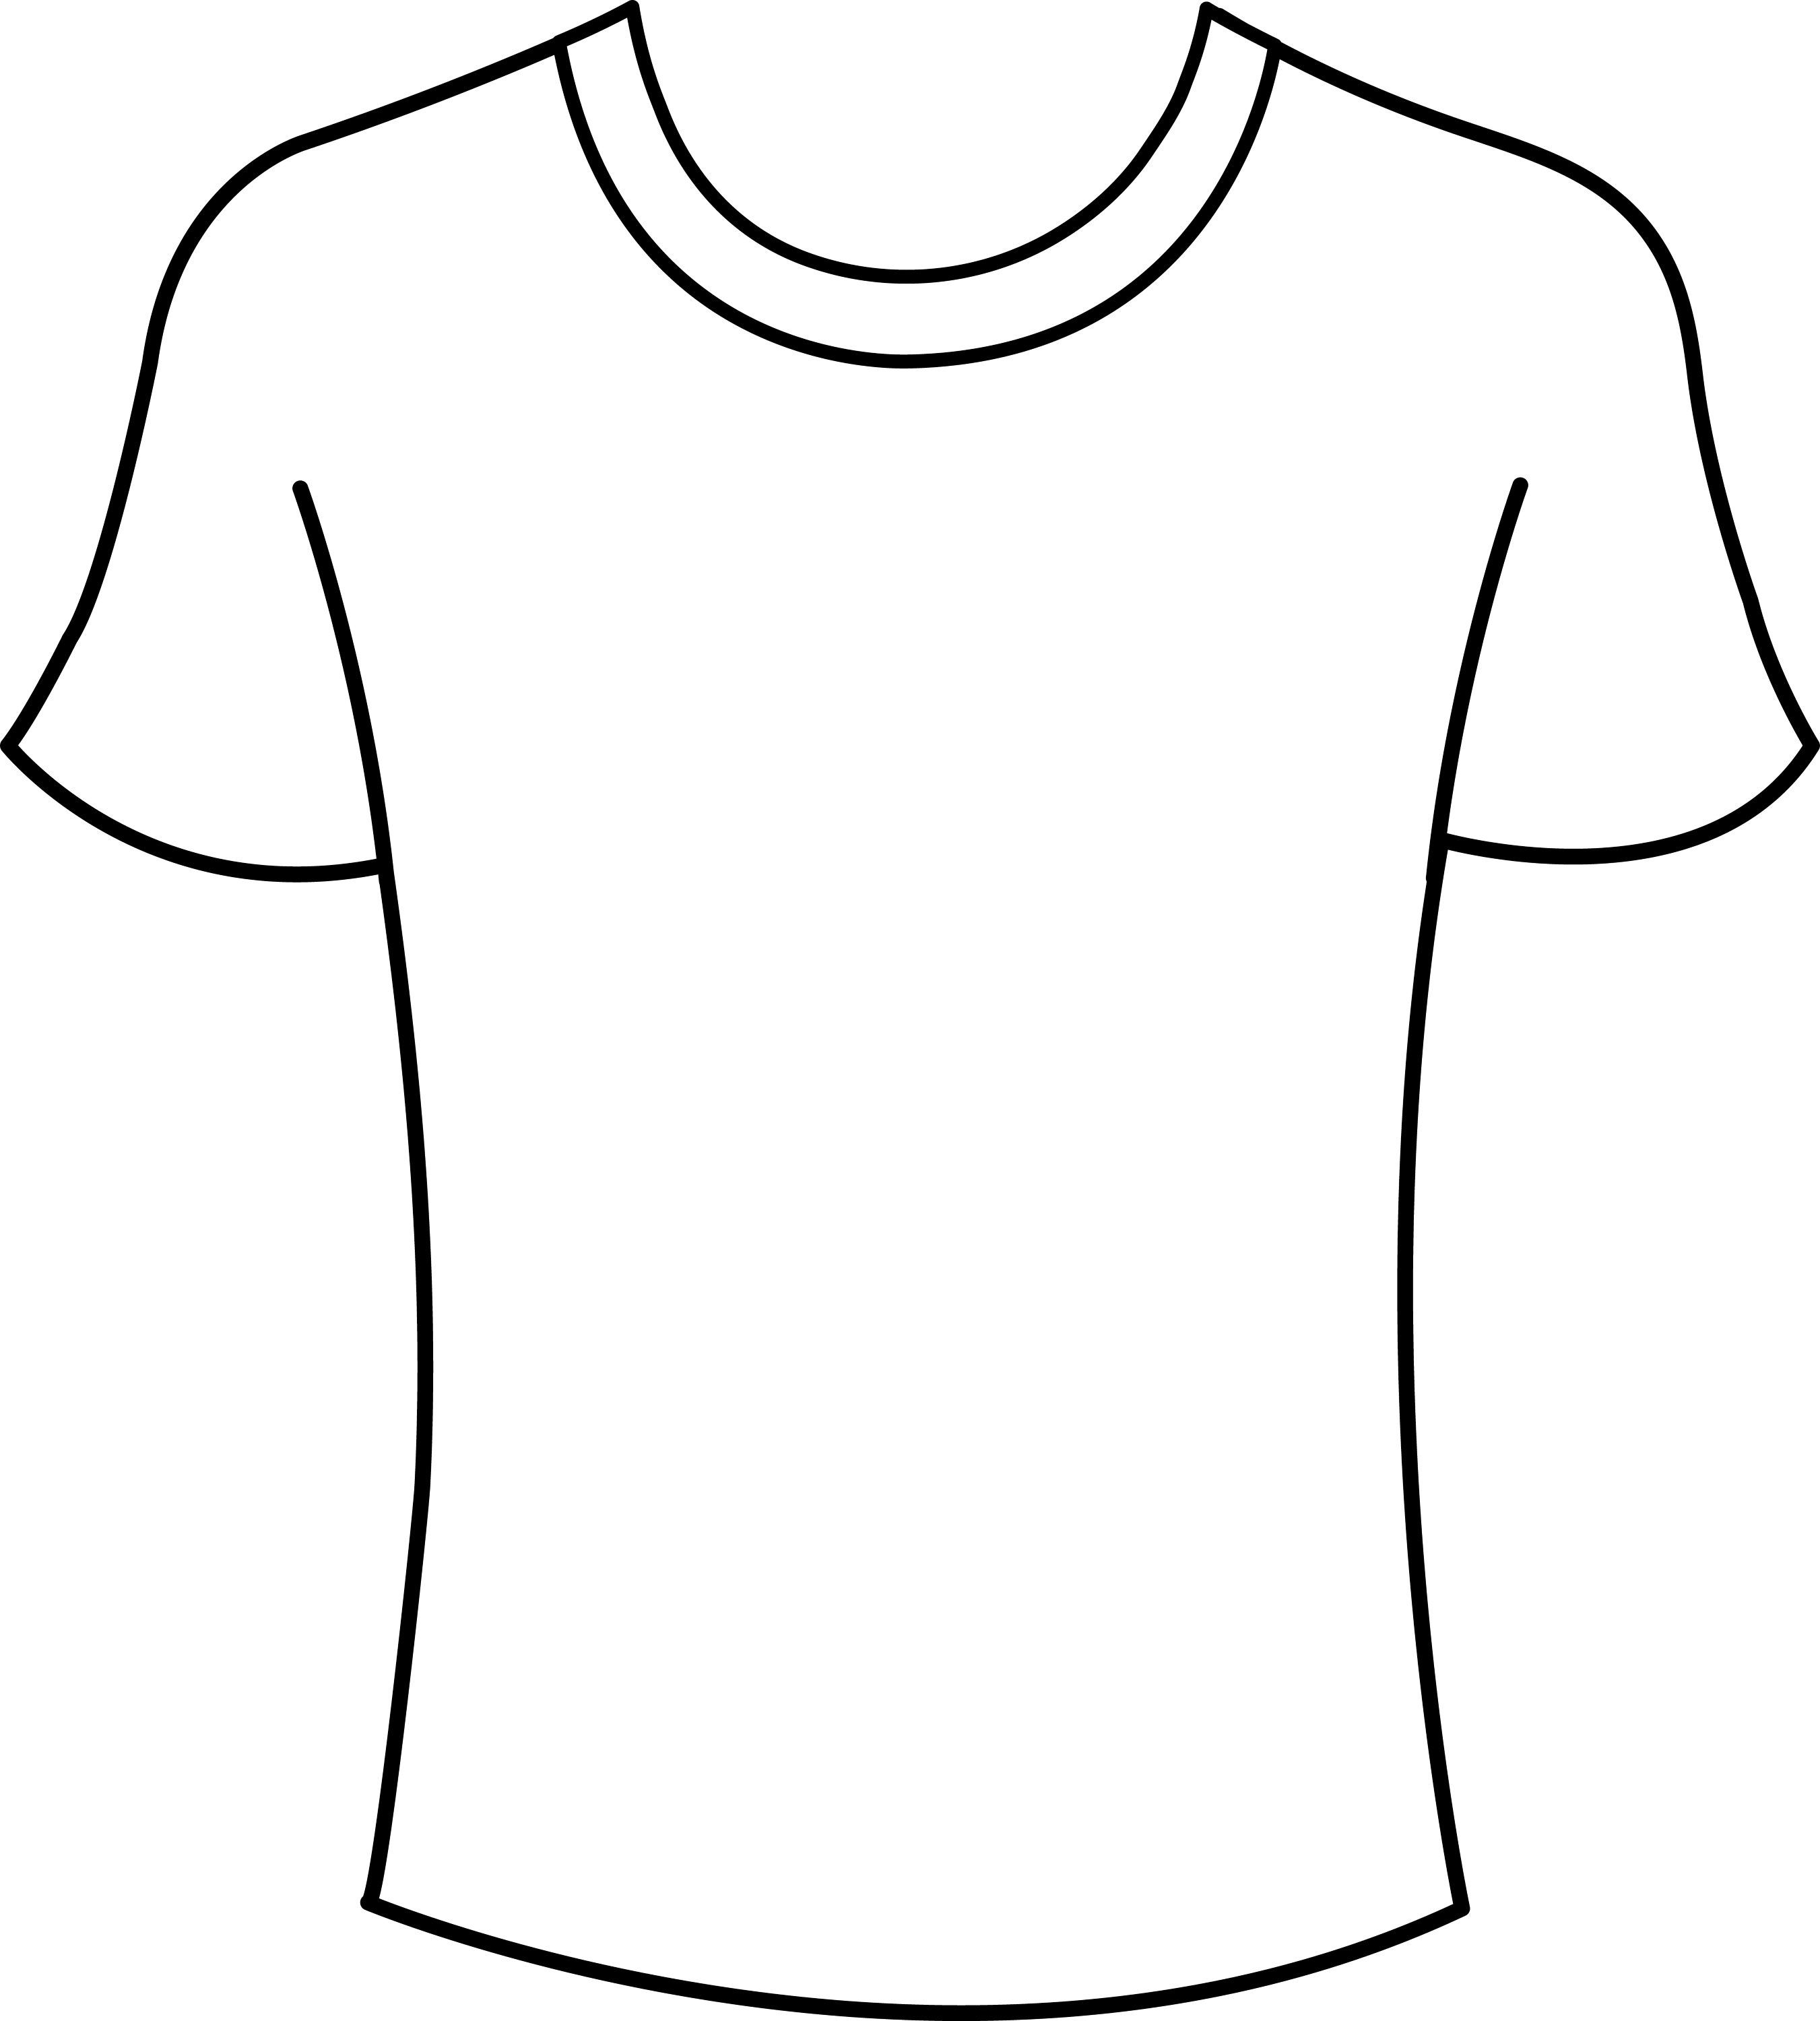 t shirt template clothestemplate cartoonshirt. Black Bedroom Furniture Sets. Home Design Ideas